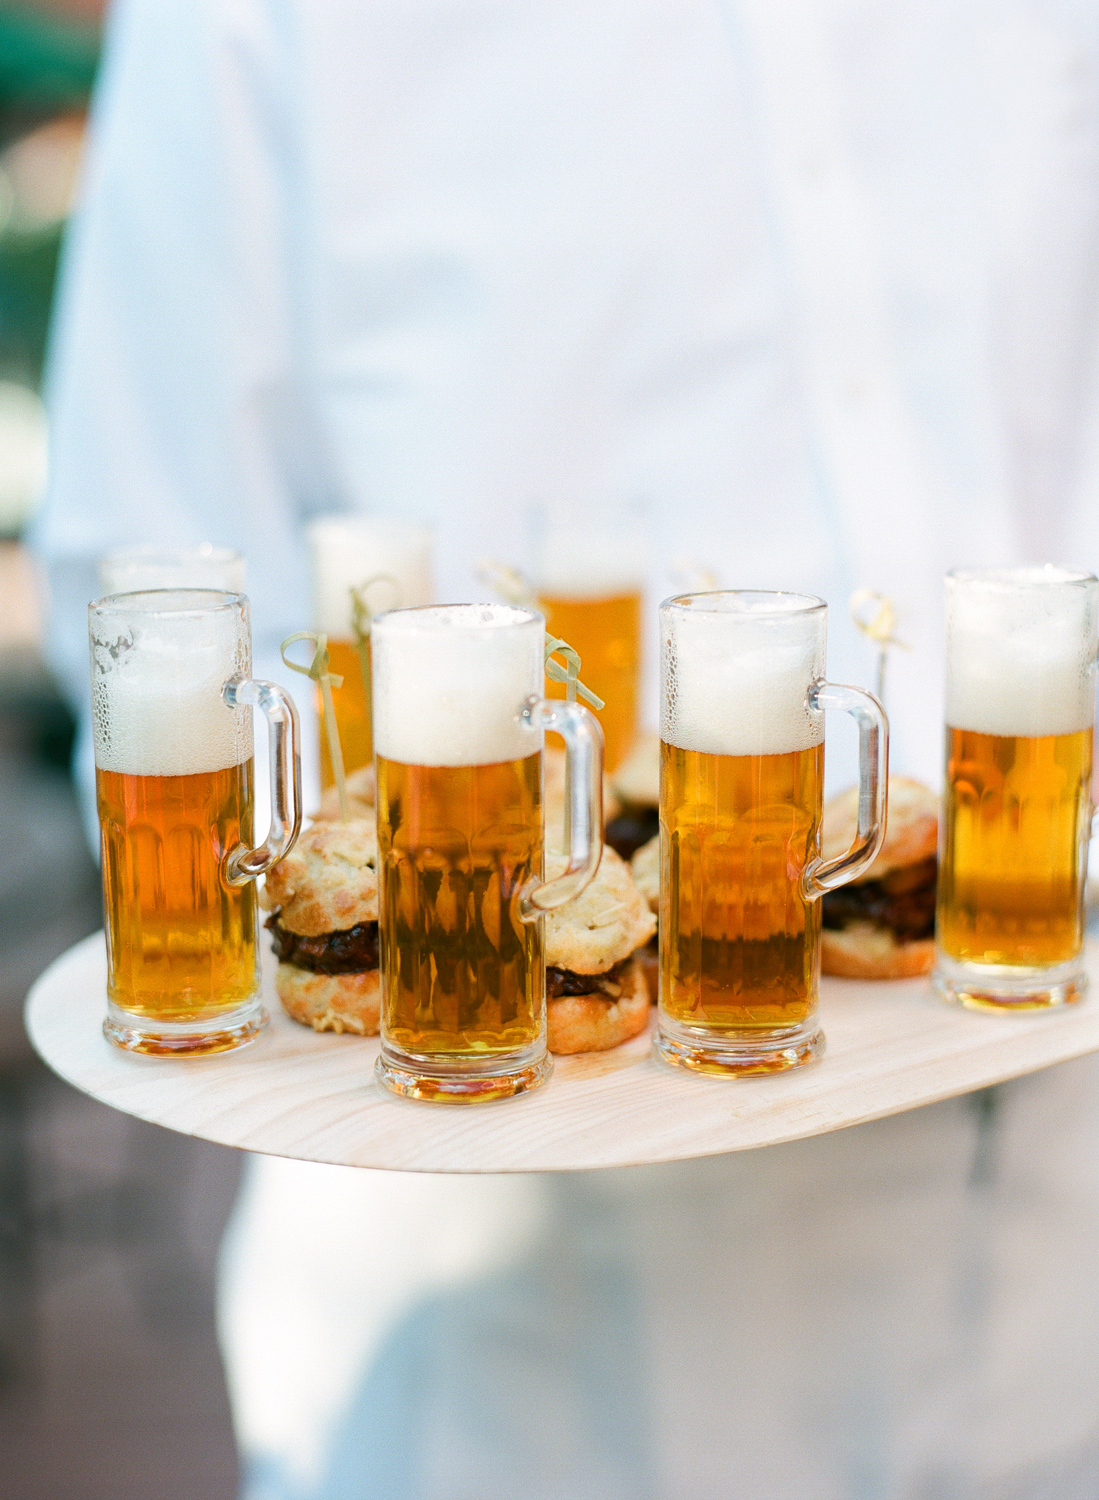 Passing tray of mini beer mugs and sliders